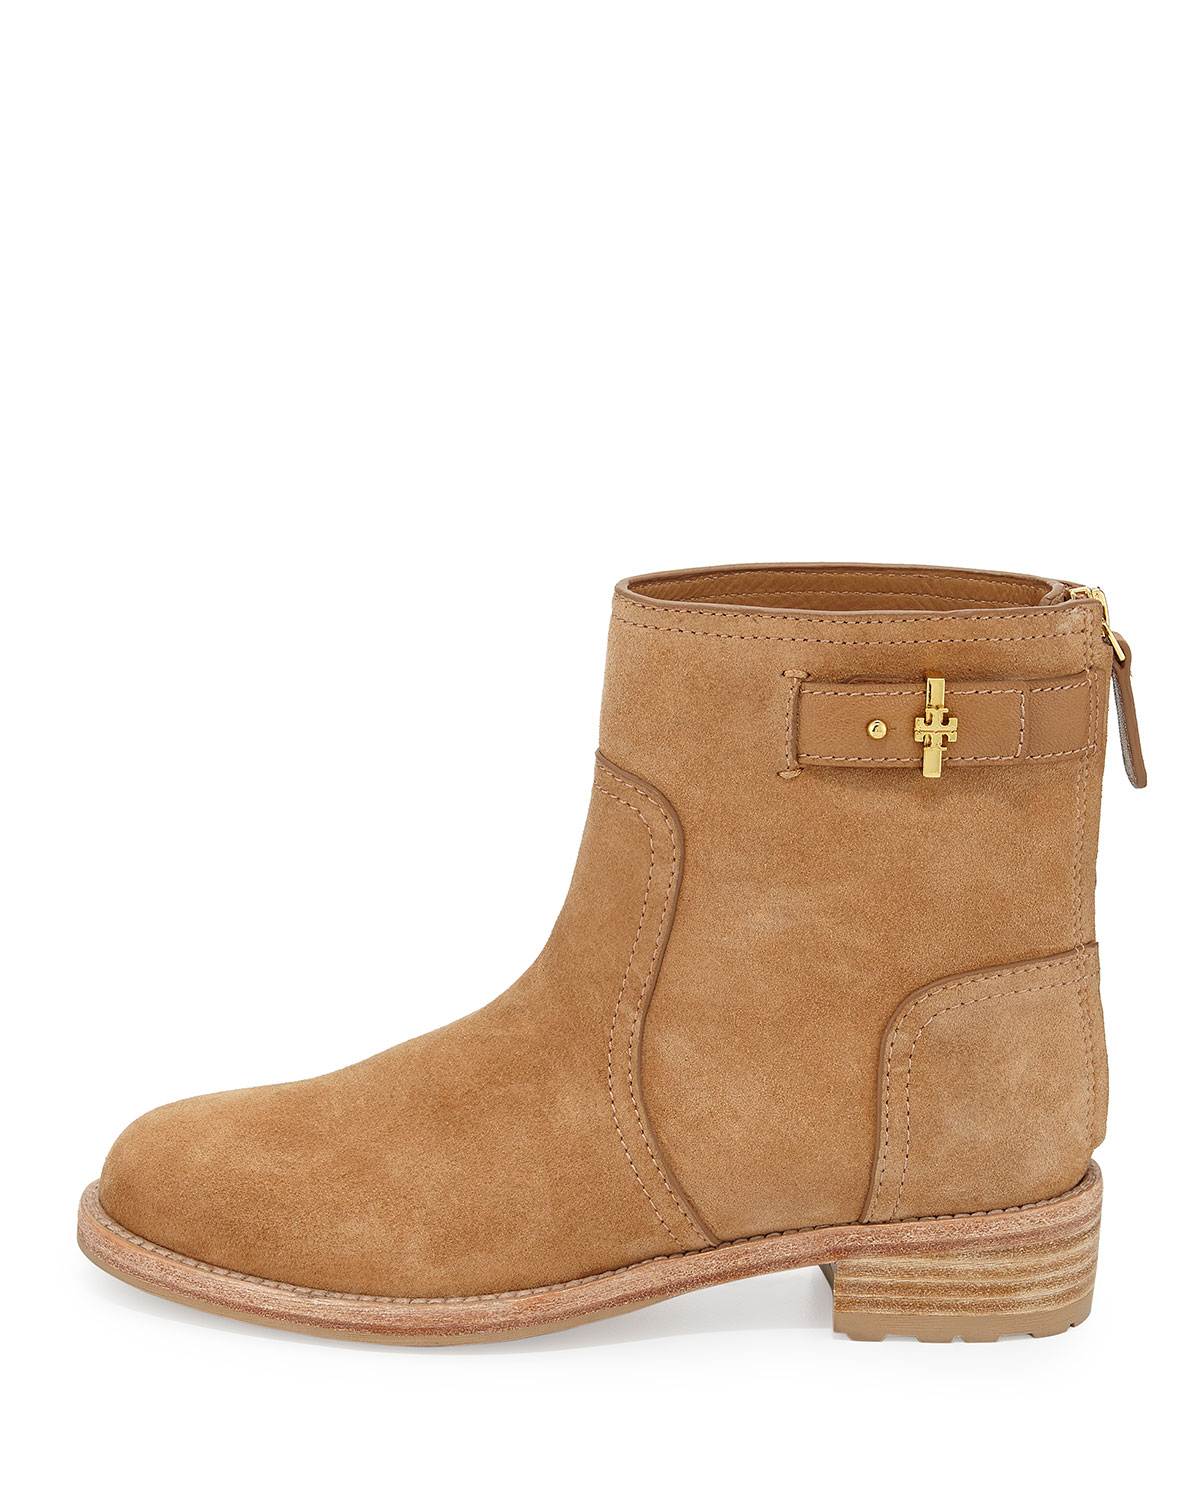 Tory burch Selena Suede Ankle Boot in Brown | Lyst